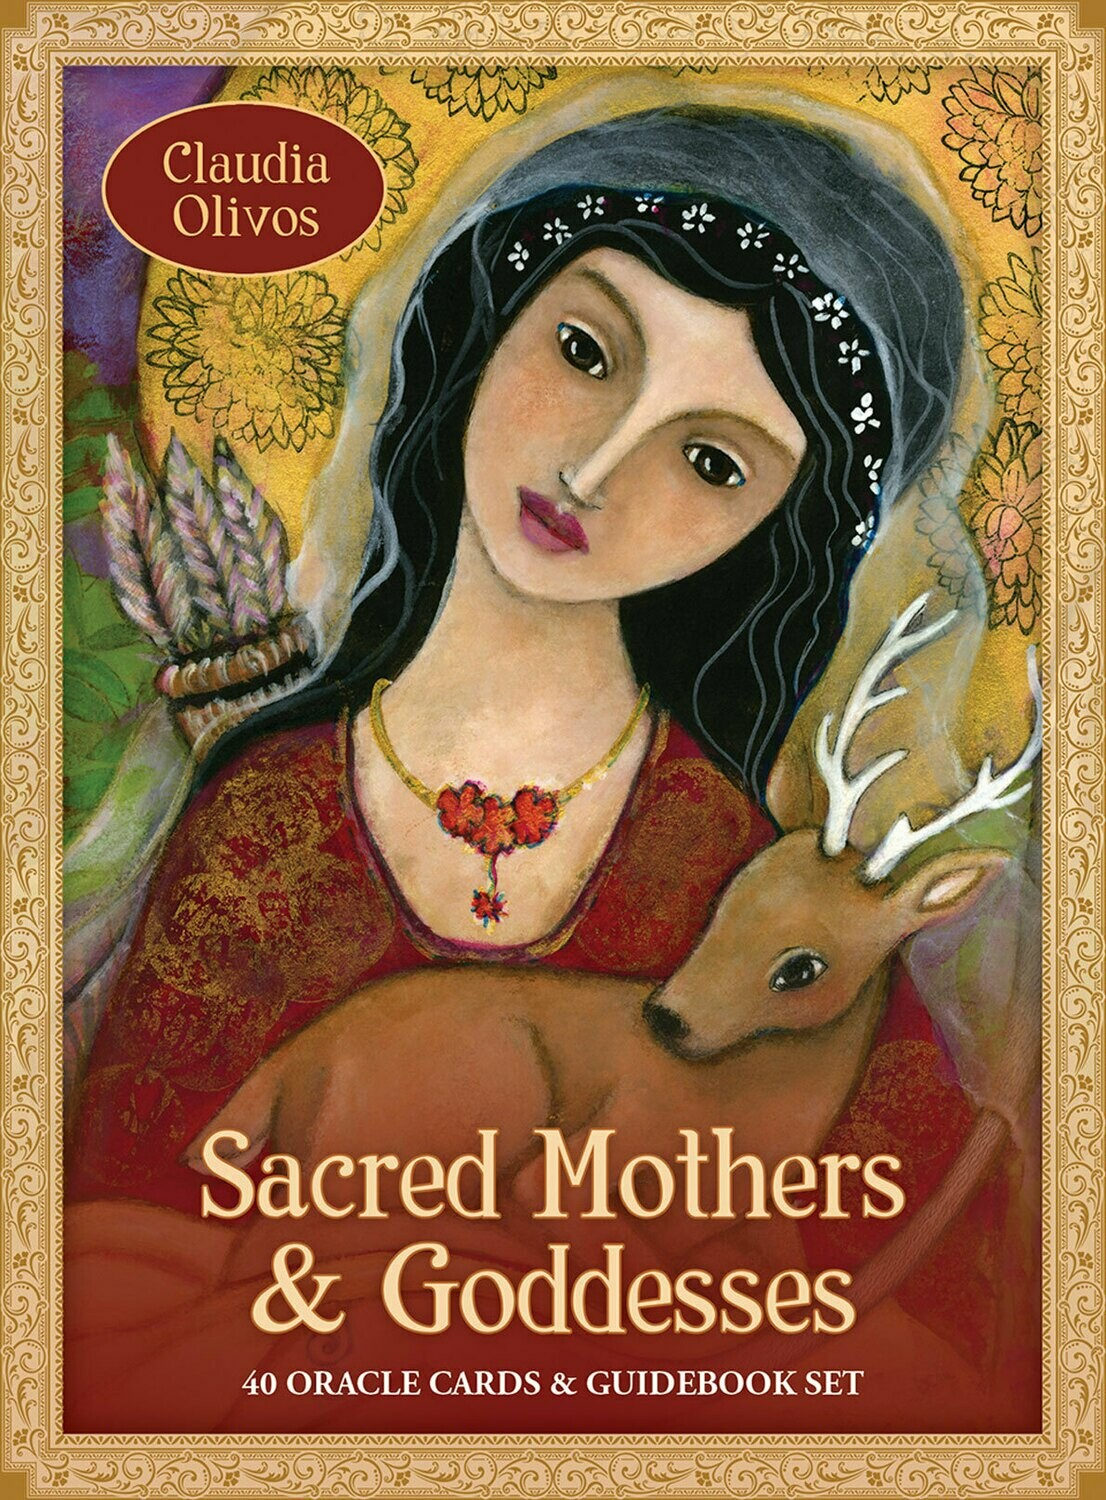 Sacred Mothers and Goddesses: 40 Oracle Cards & Guidebook Set